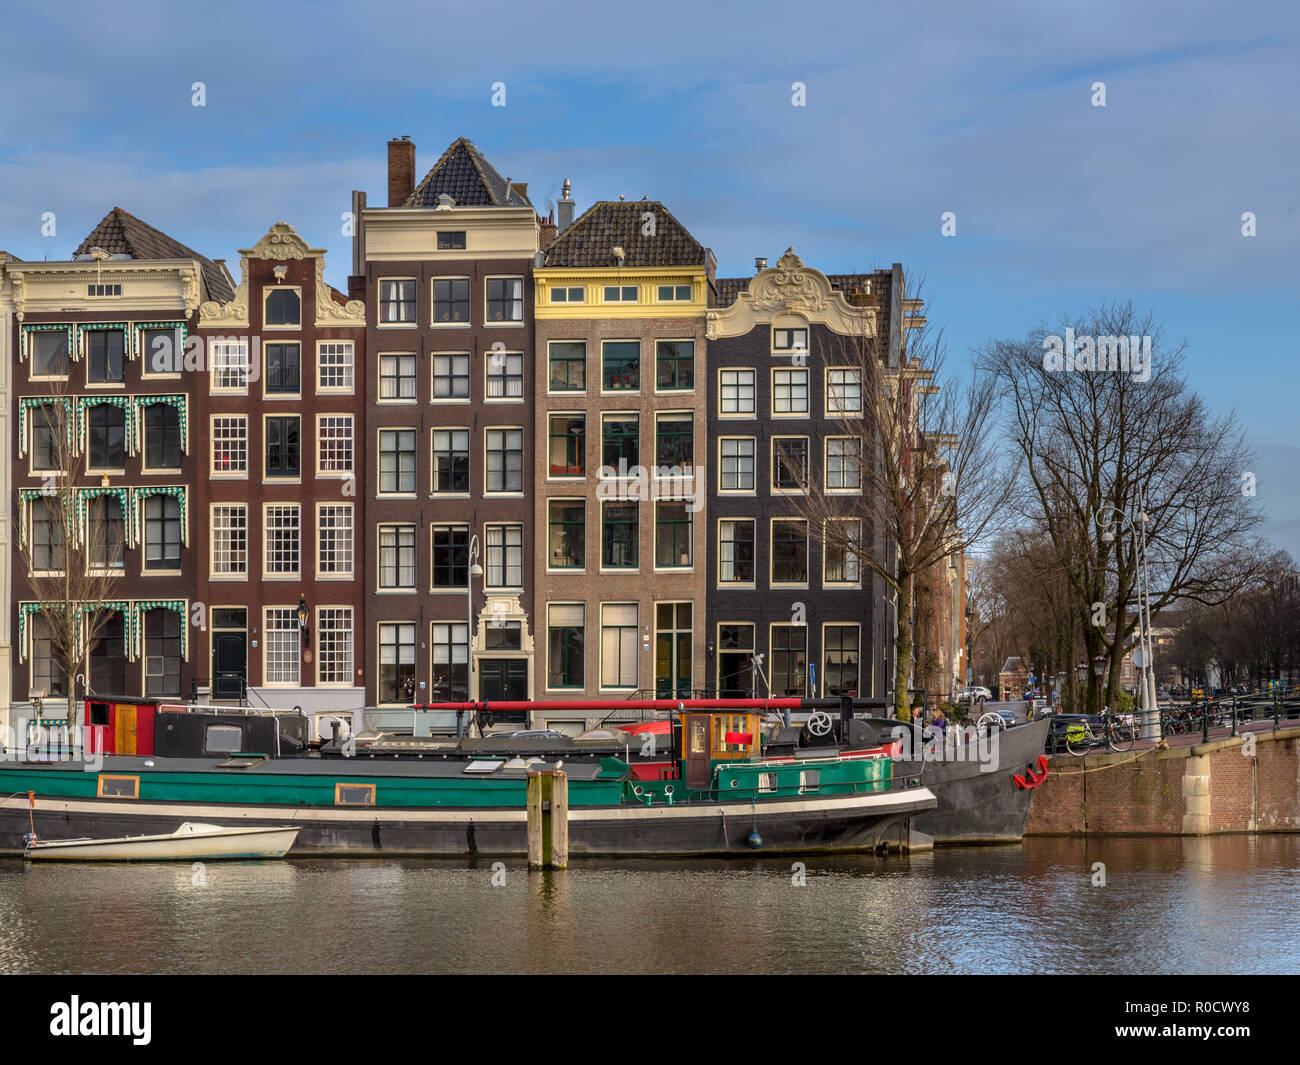 Colorful traditional canal houses and boats in the UNESCO World Heritage site of Amsterdam on the corner of Amstel and Nieuwe Prinsengracht - Stock Image